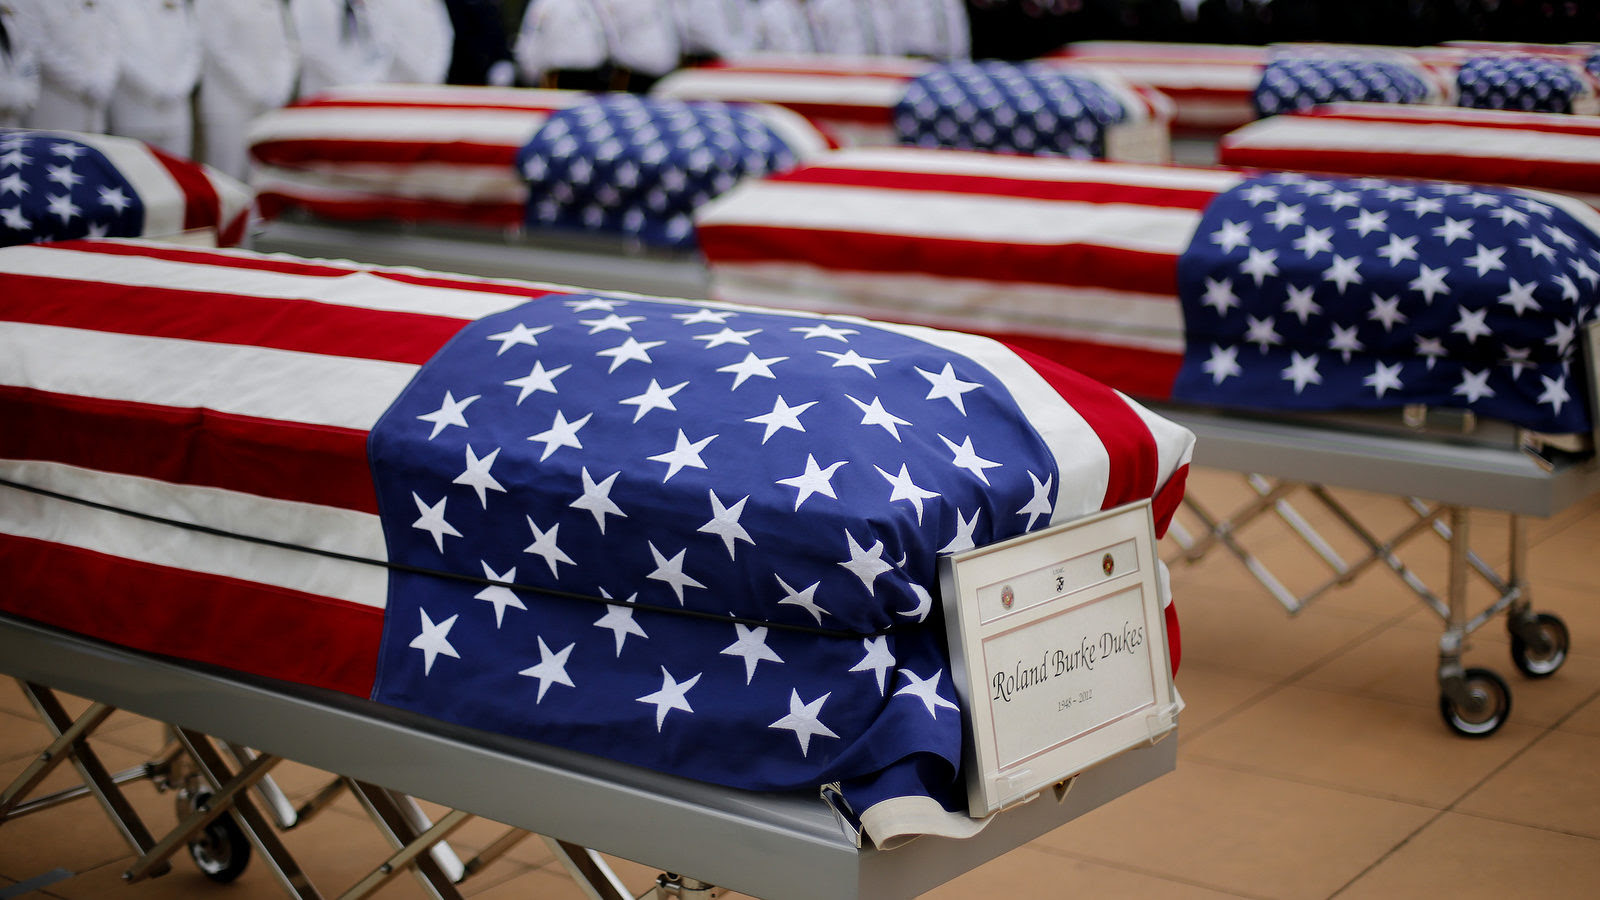 The flag draped casket of Roland Burke Dukes is shown during a memorial service and burial at Great Lakes National Cemetery in Holly Township, Mich., Thursday, Sept. 11, 2014. Thirteen military veterans whose remains went unclaimed at a Detroit morgue finally have been laid to rest. (AP Photo/Paul Sancya)